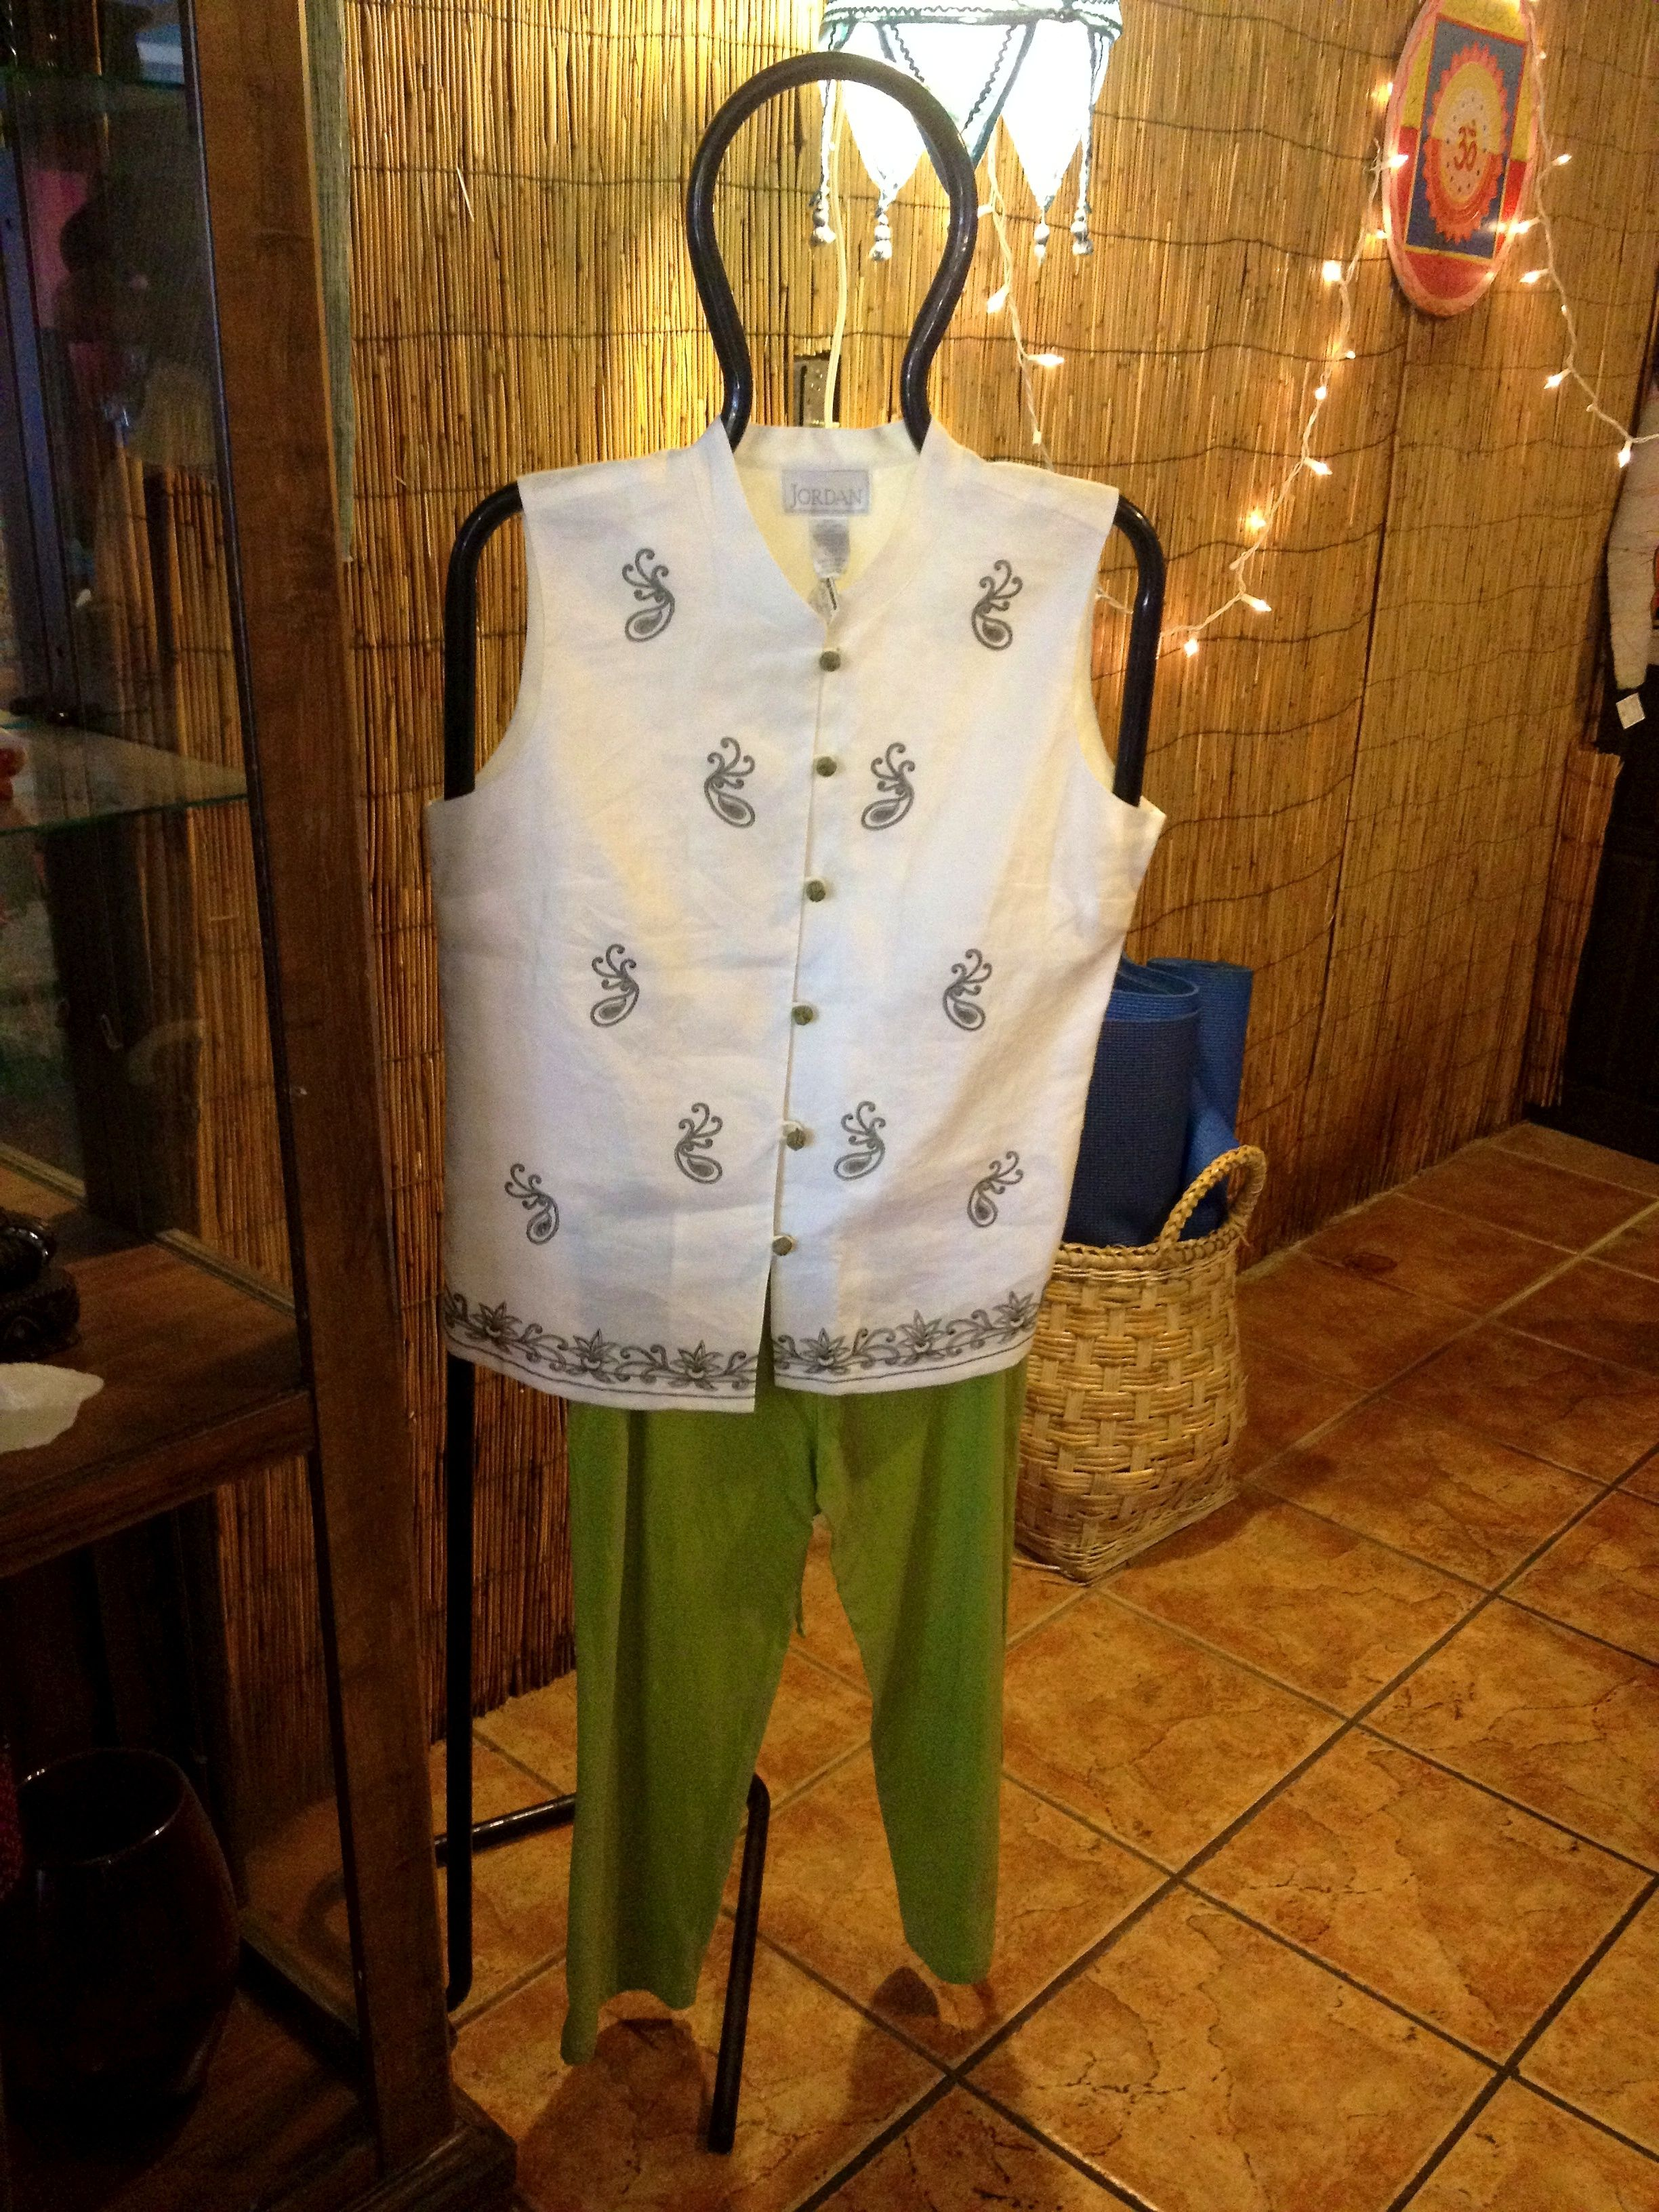 Love both the neru top with embroidery and the green pants.